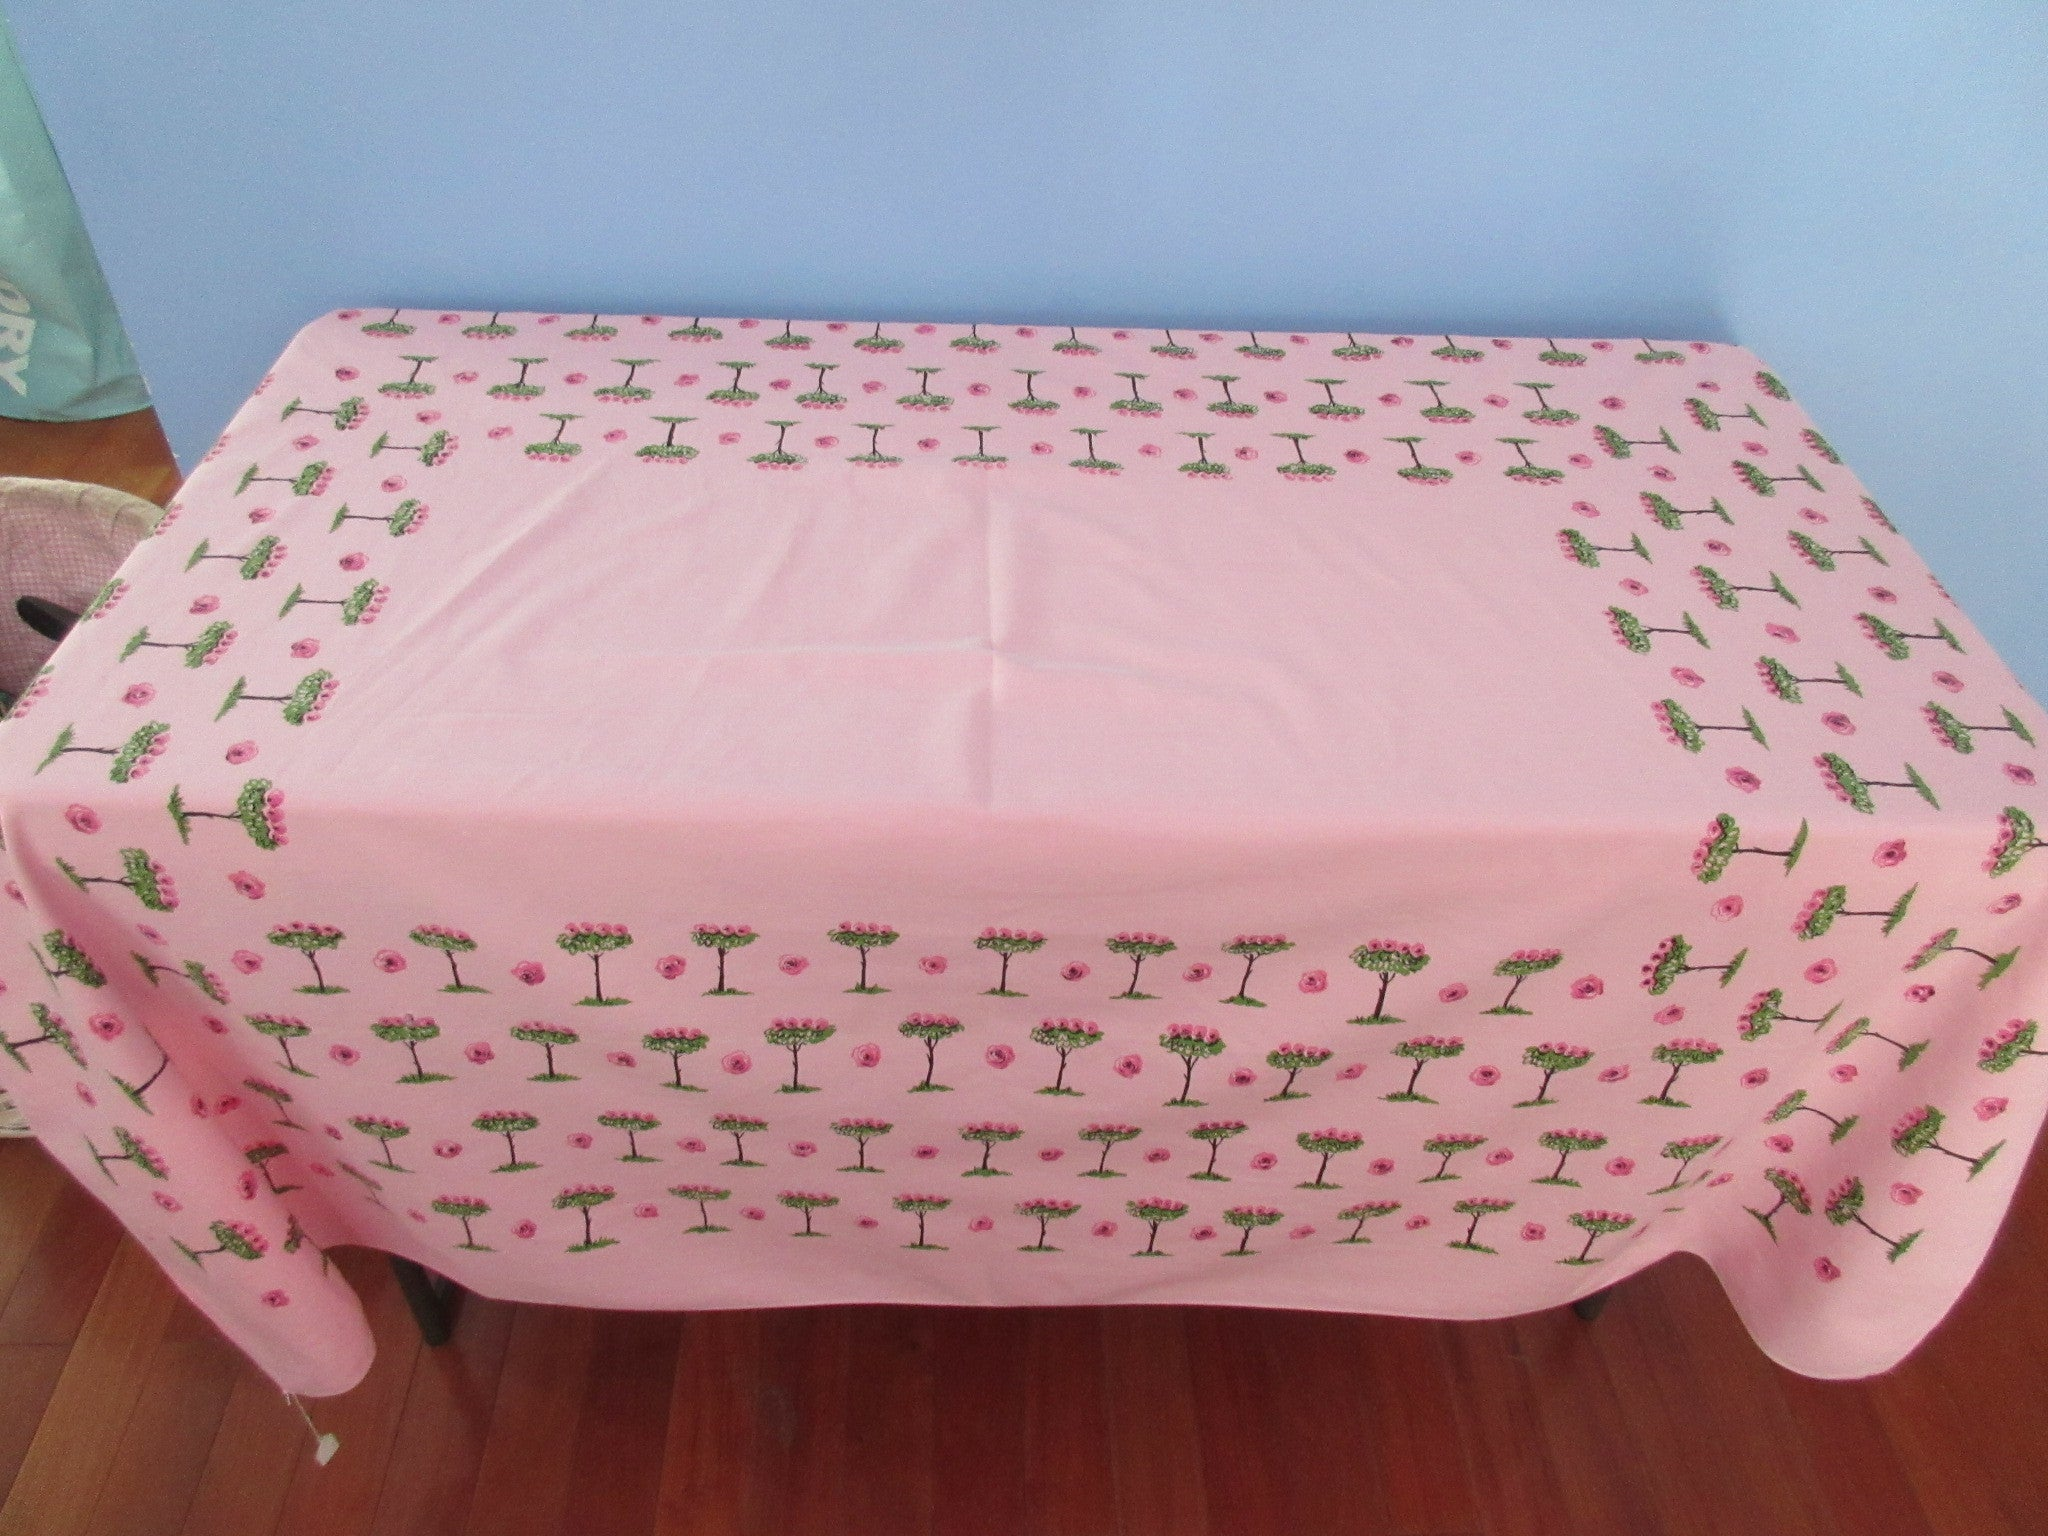 Pink Rose Trees On Pink Floral Cutter? Vintage Printed Tablecloth (60 X 52)